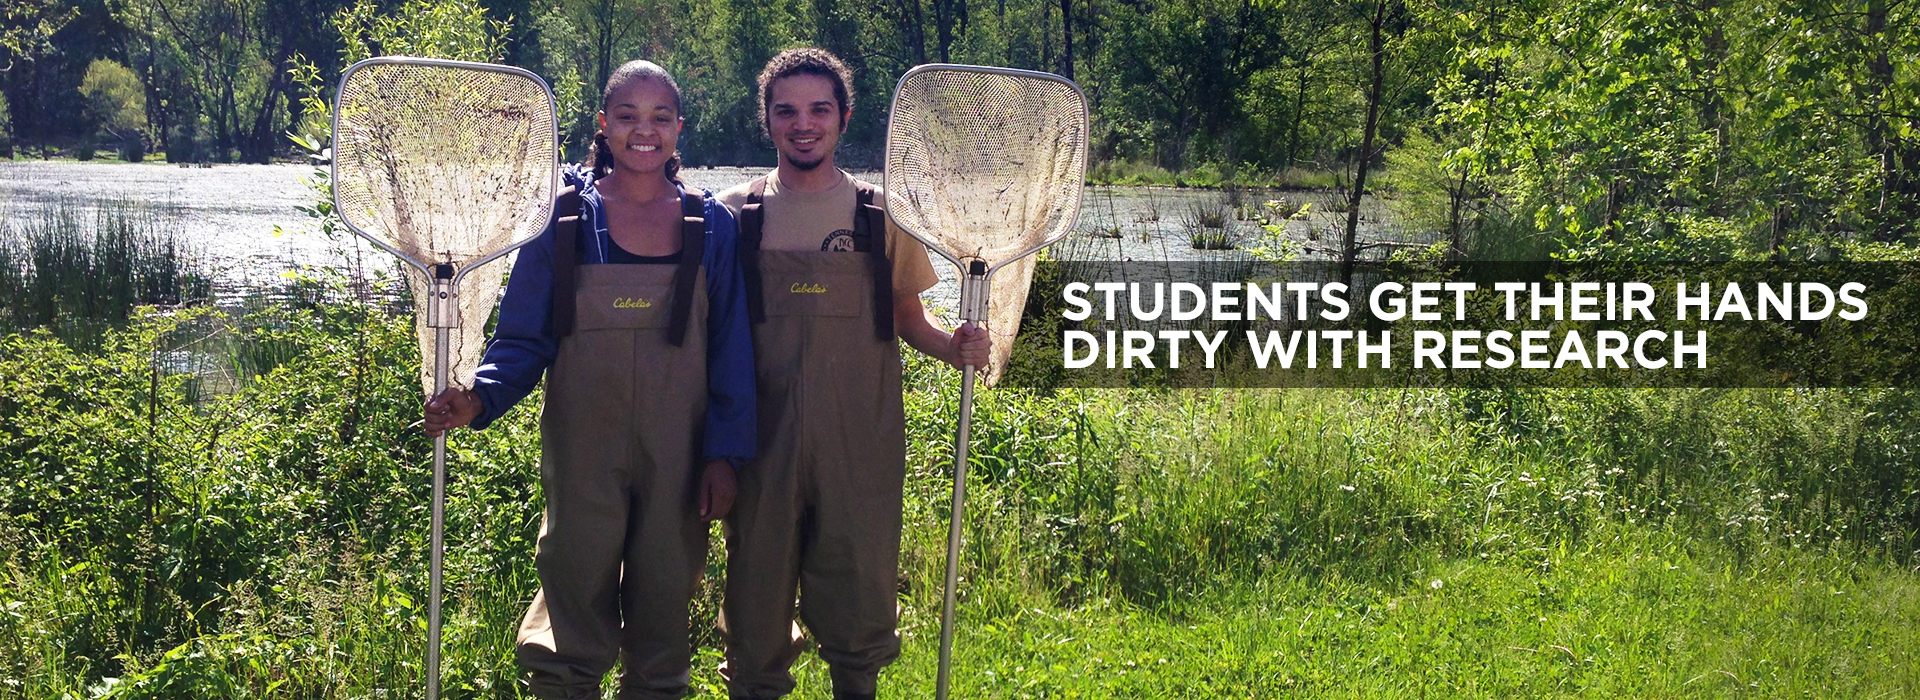 Students get their hands dirty with research.